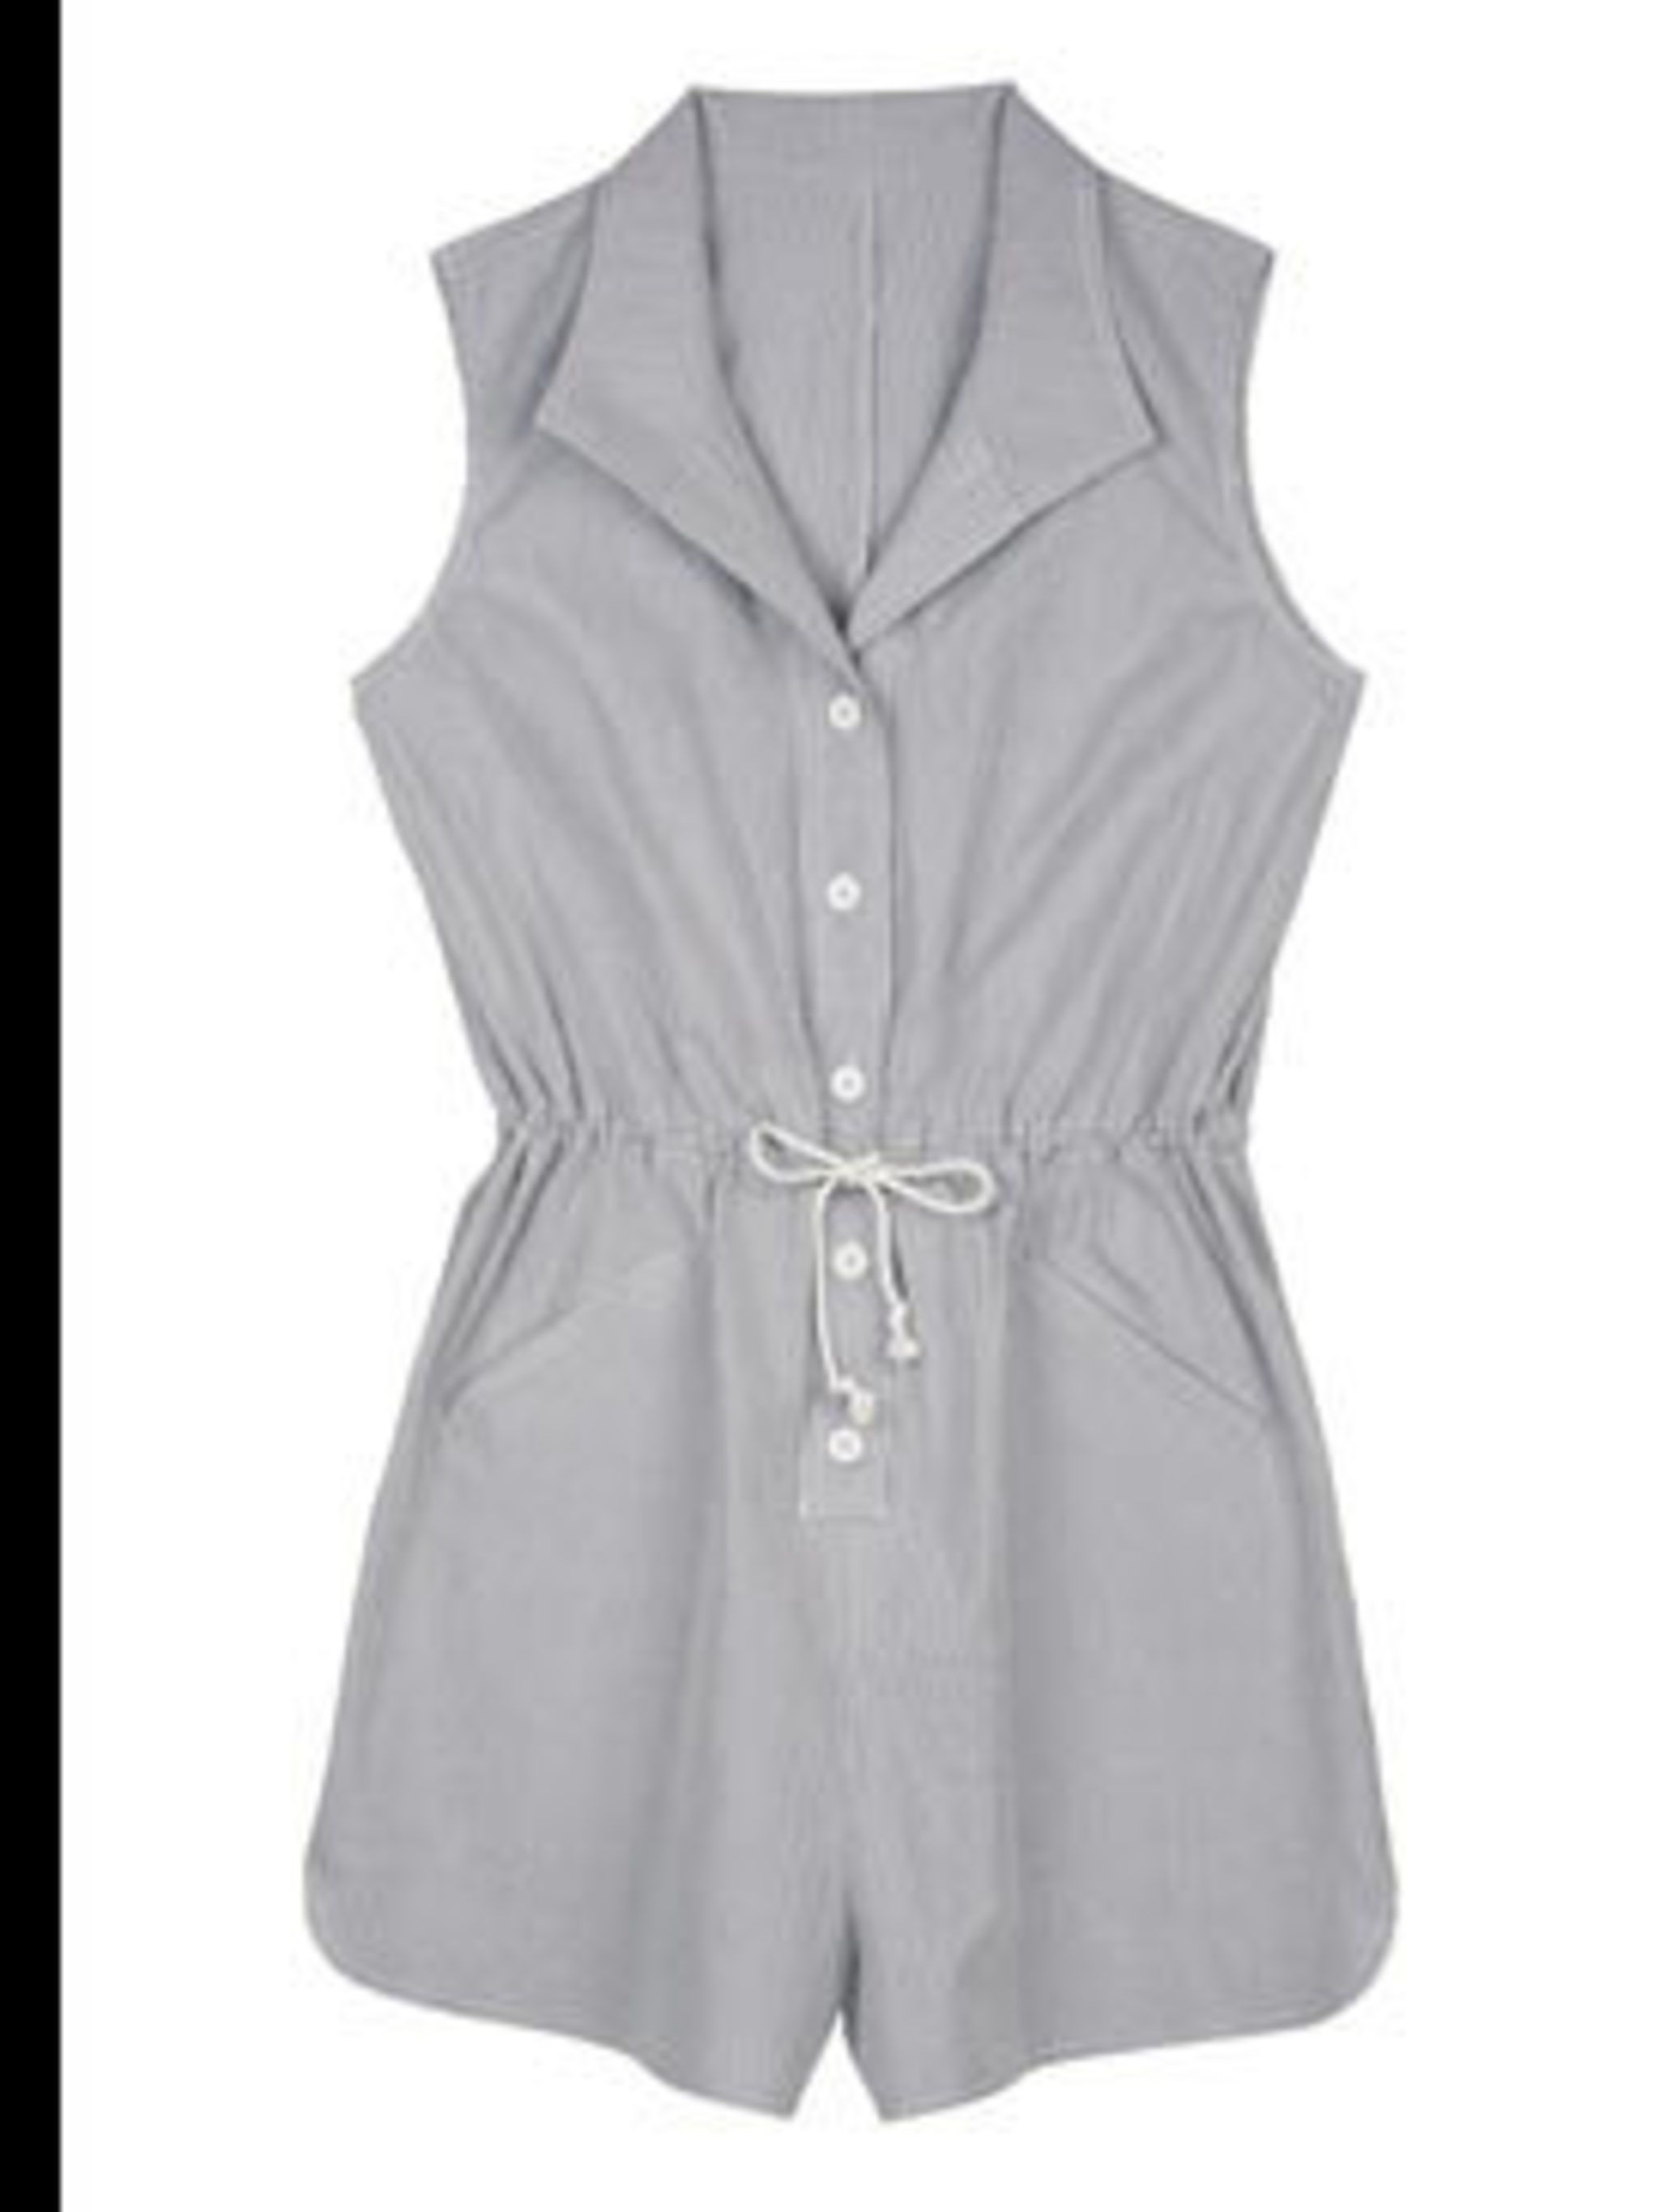 "<p>Playsuit, £45 by <a href=""http://www.urbanoutfitters.co.uk/page/home"">Urban Outfitters</a></p>"